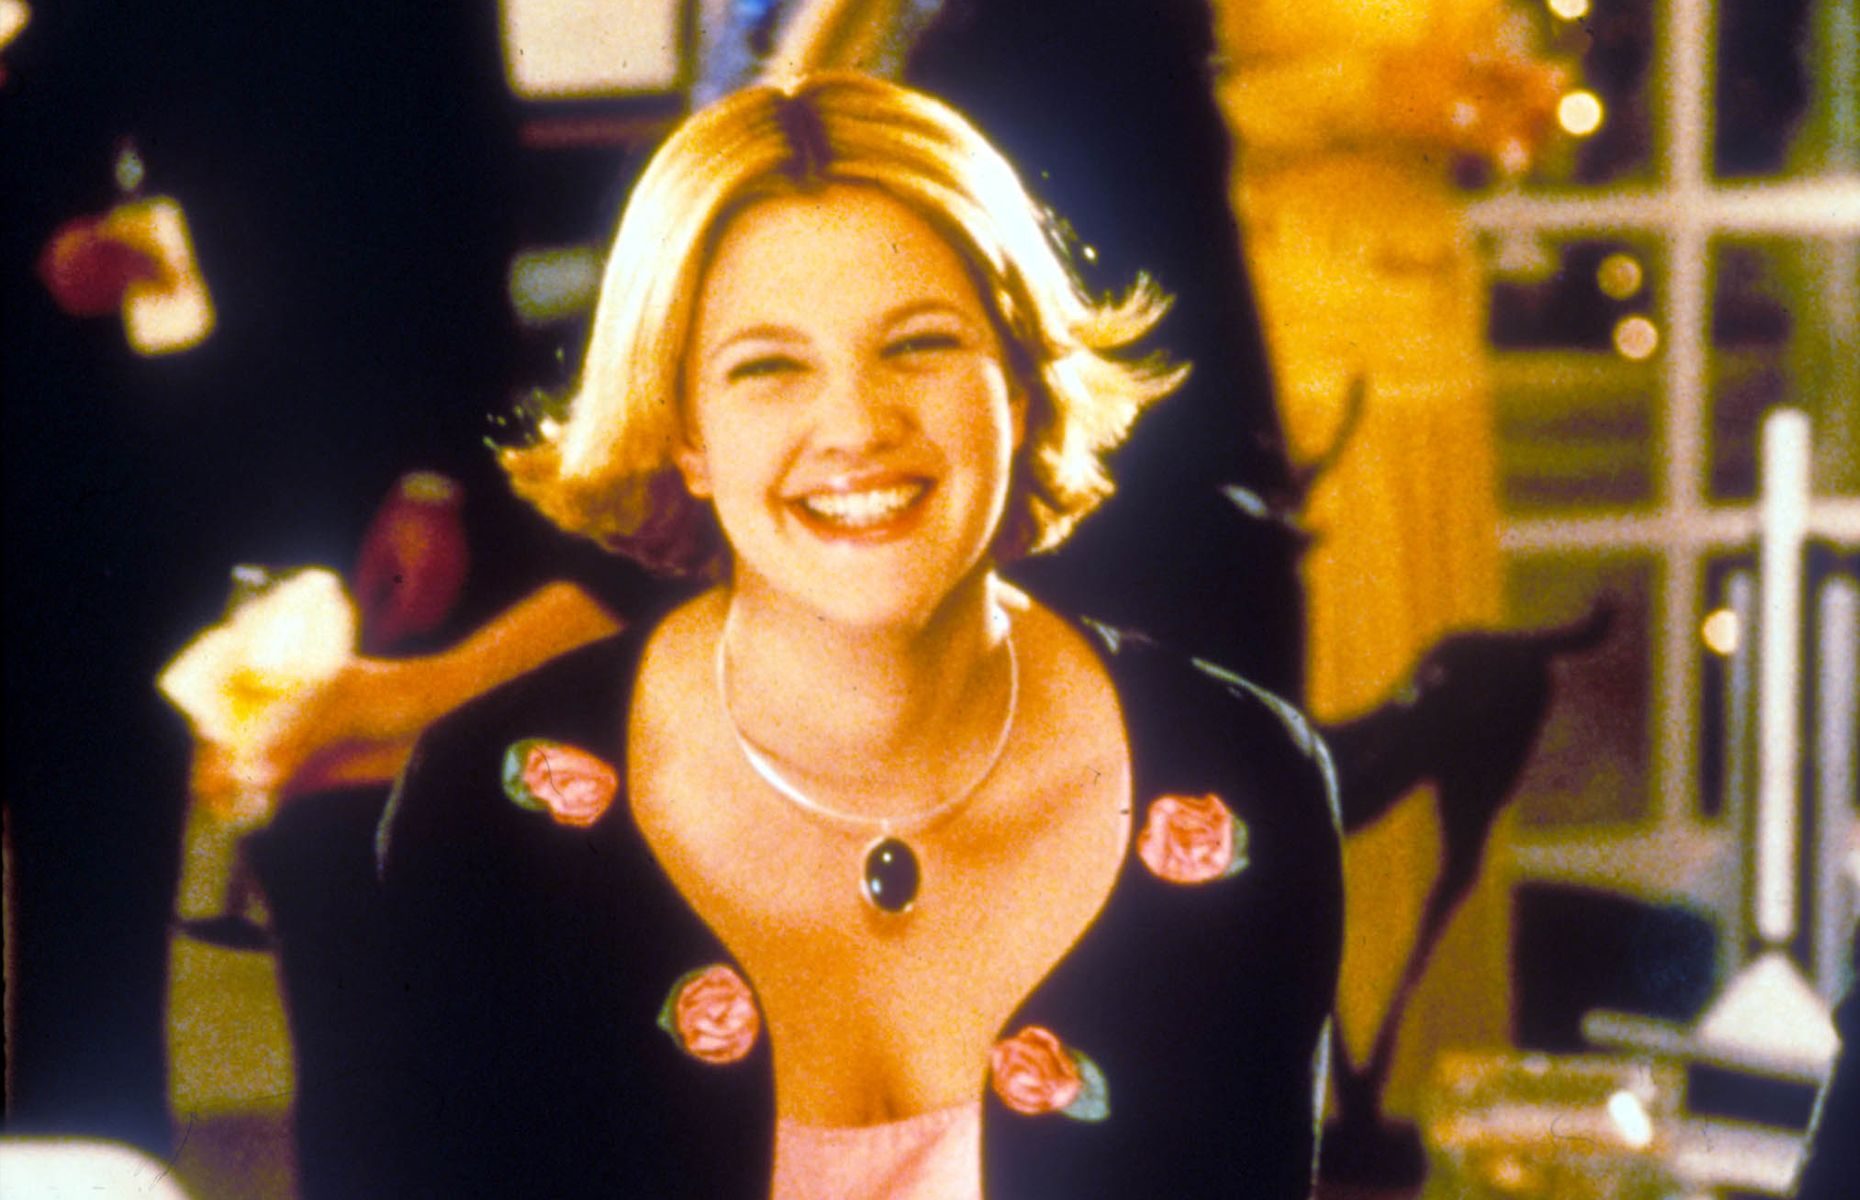 Drew Barrymore As Julia Sullivan The Wedding Singer 1998